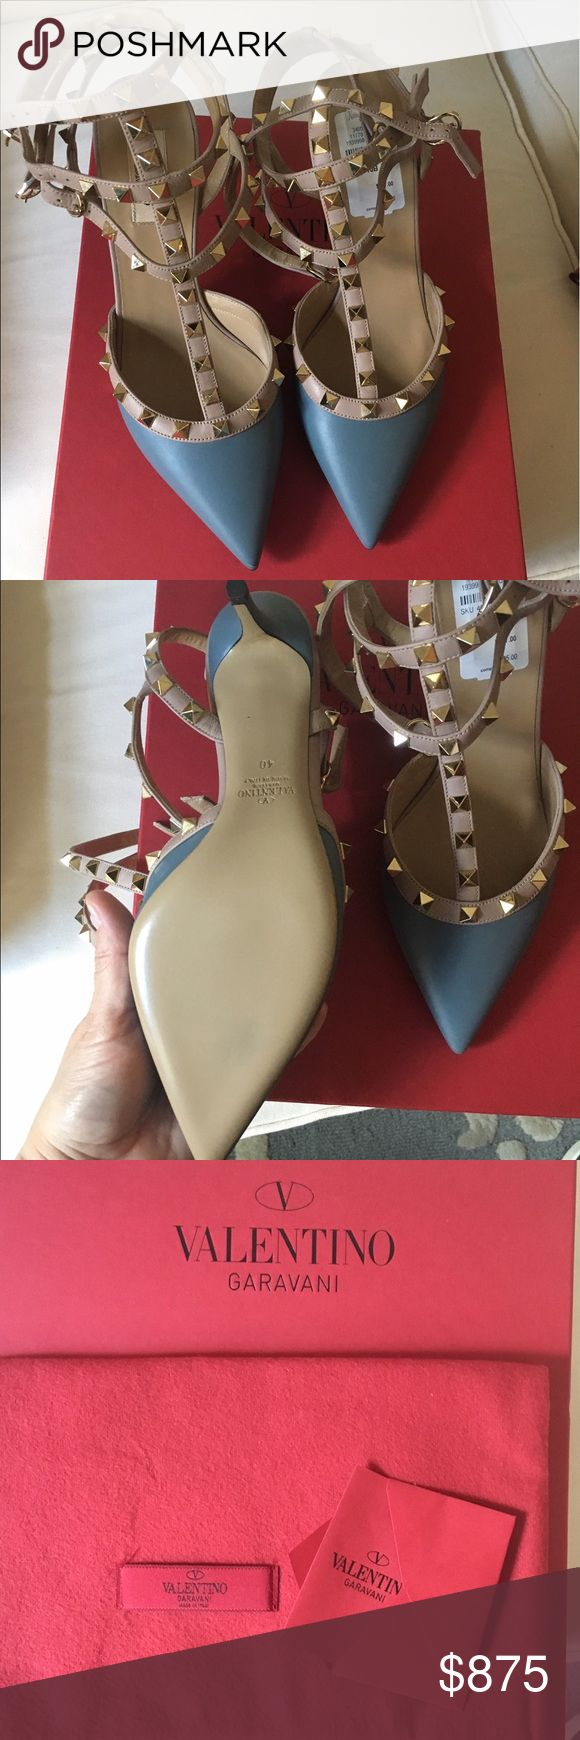 Valentino Grey Rockstud Pumps Sz.40 Brand New in Box. Purchased at Neiman Marcus Last Call. Gray/nude pink Valentino Rockstud pumps. Sz.40                                   As you can see in last pic the left shoe needs a stitch in the loop that connects the two lower straps. Right shoe is fine. Some flexibility in price. 🅿️🅿️ cheaper. Lowball offers will be ignored and user blocked. Valentino Garavani Shoes Heels